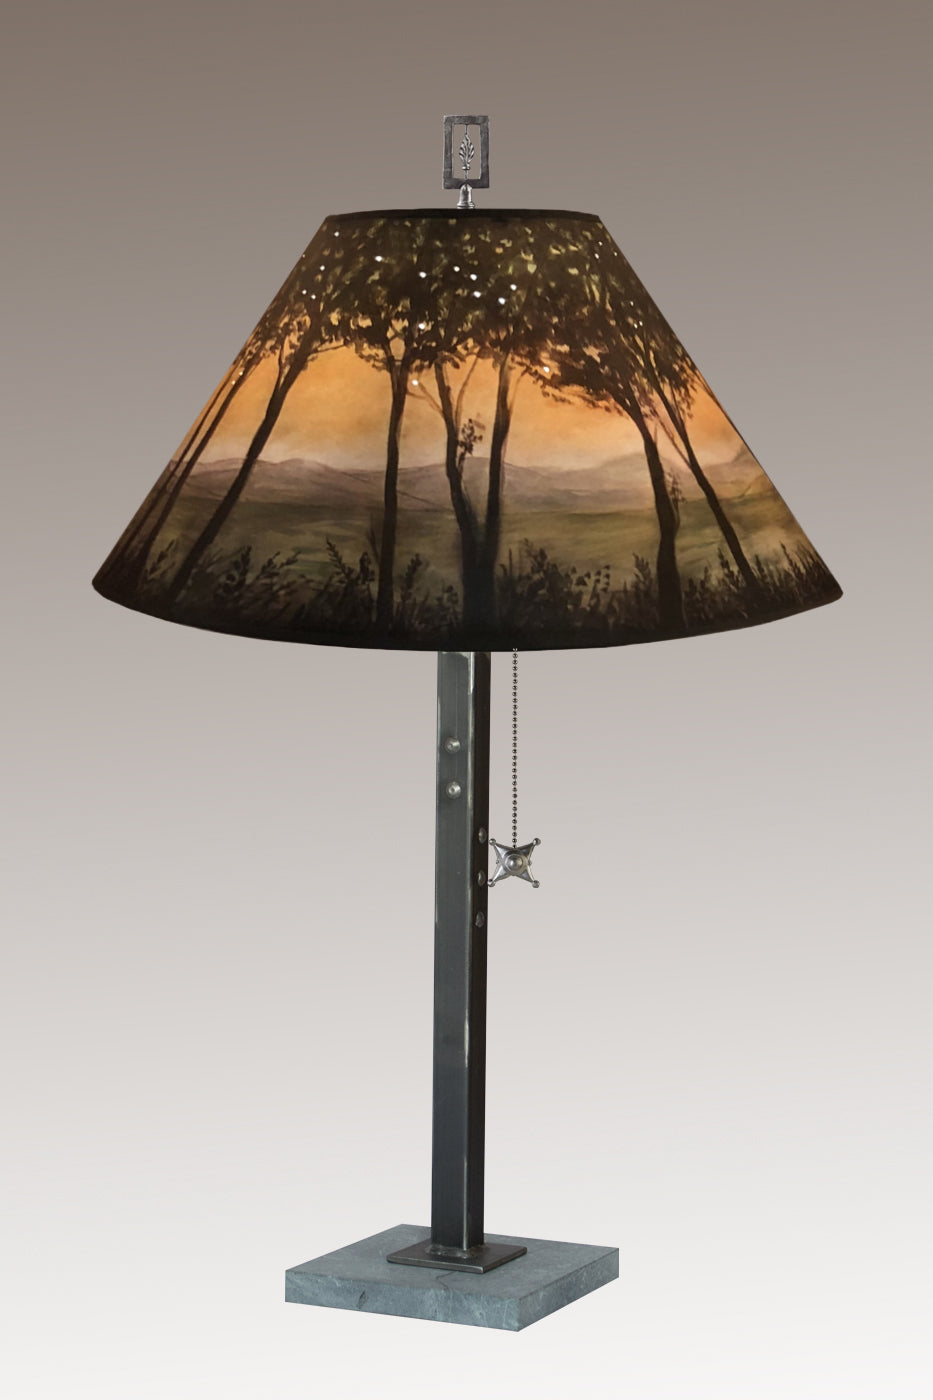 Steel Table Lamp on Italian Marble with Large Conical Shade in Dawn